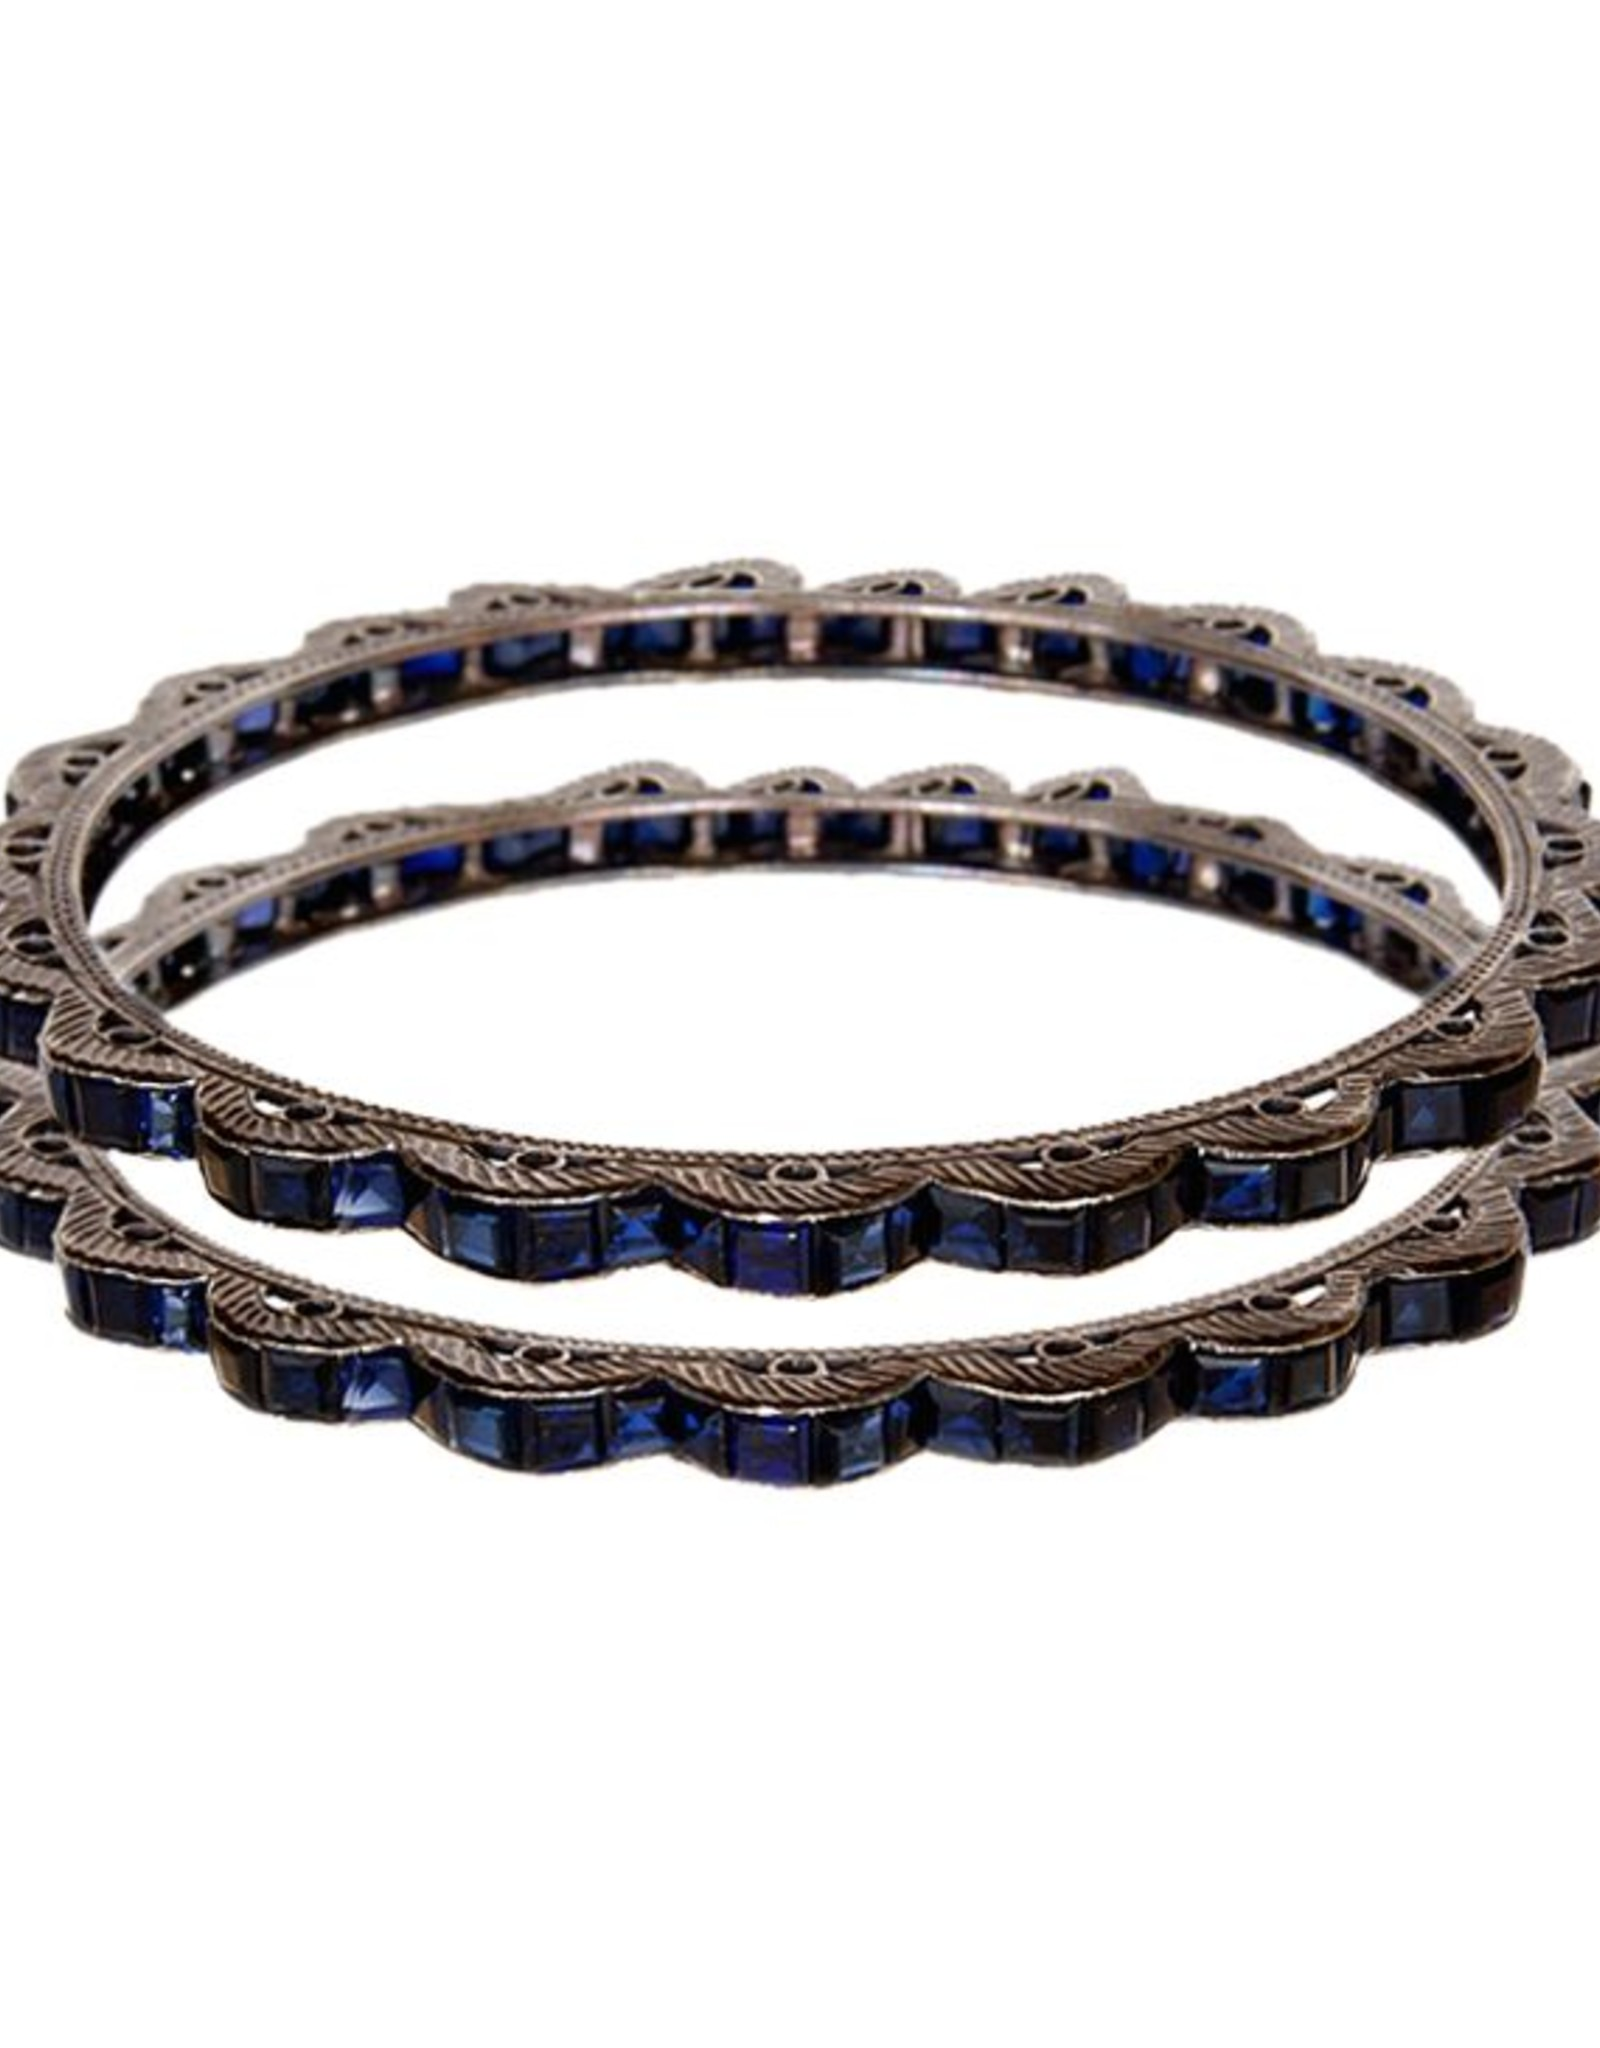 Himatsingka Sophia Blue Scalloped Bangle